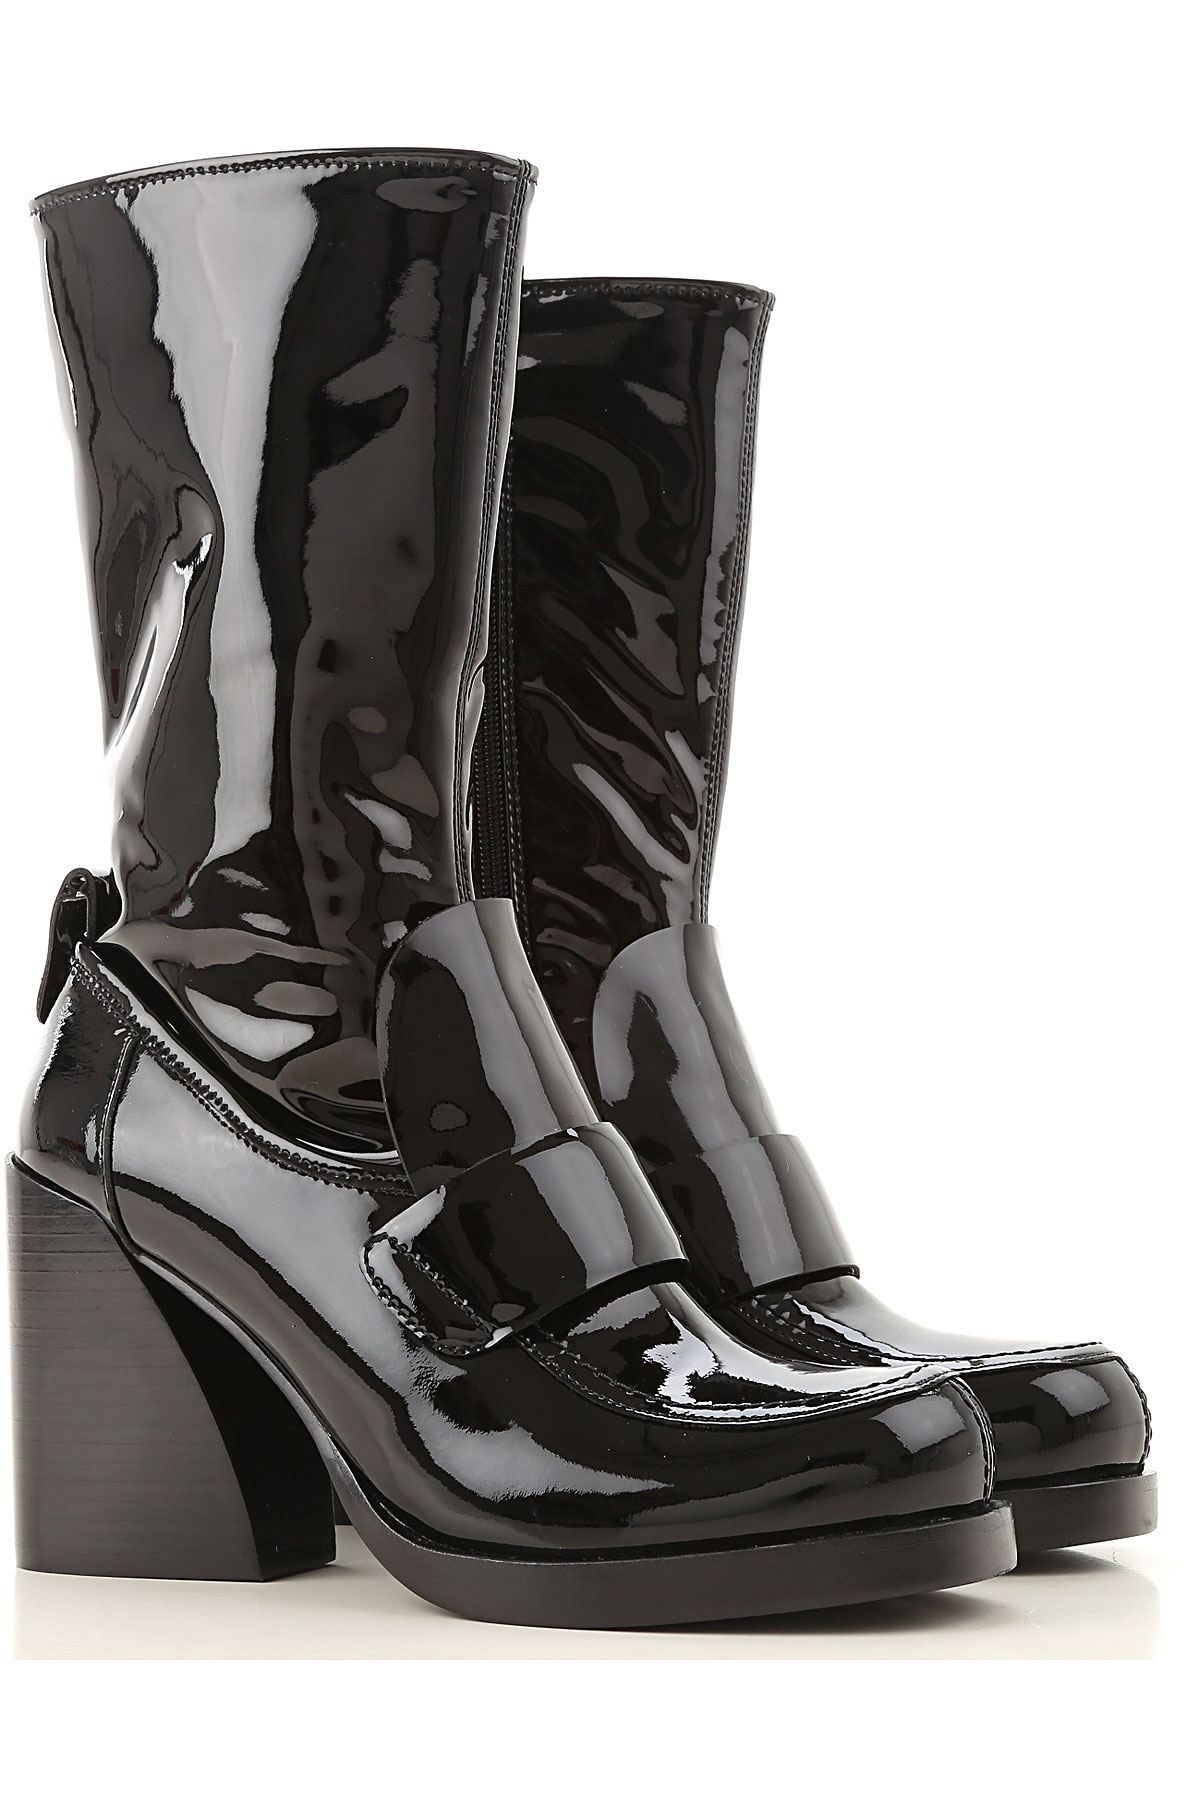 Jeffrey Campbell Boots for Women, Booties On Sale, Black, Patent Leather, 2019, 10 11 6 7 8 9